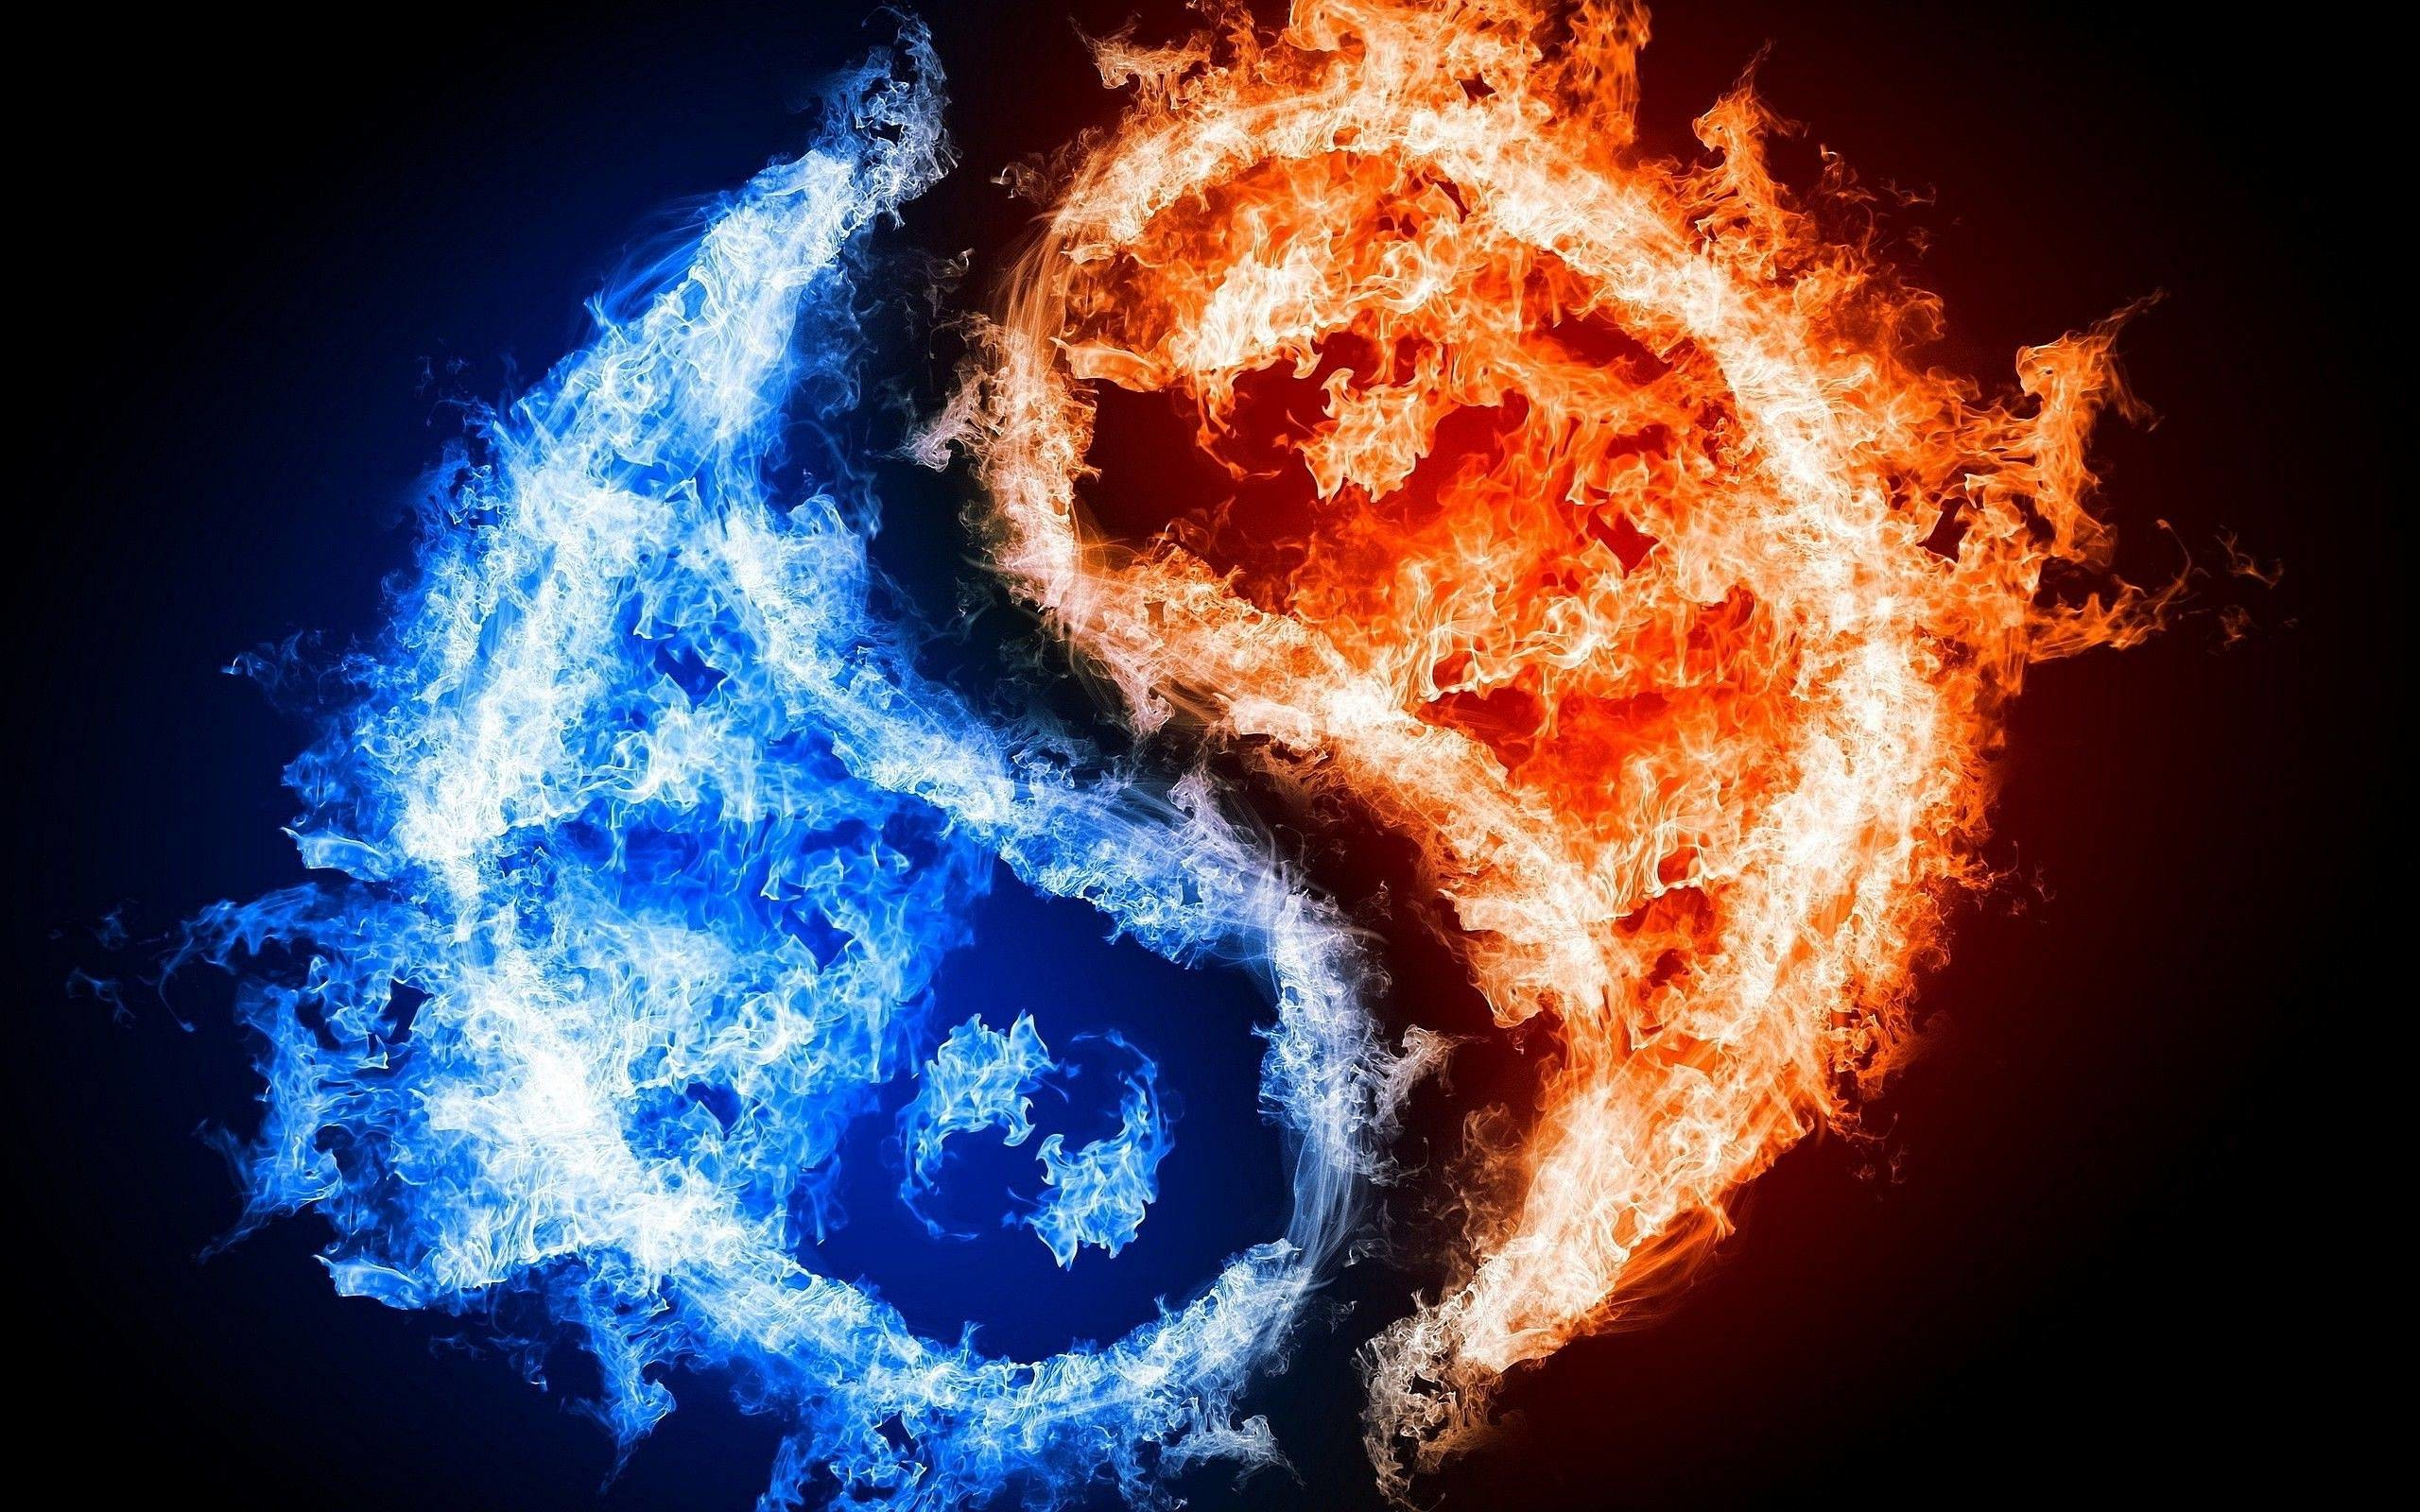 Yin Yang Fire Ice Wallpapers | Pictures